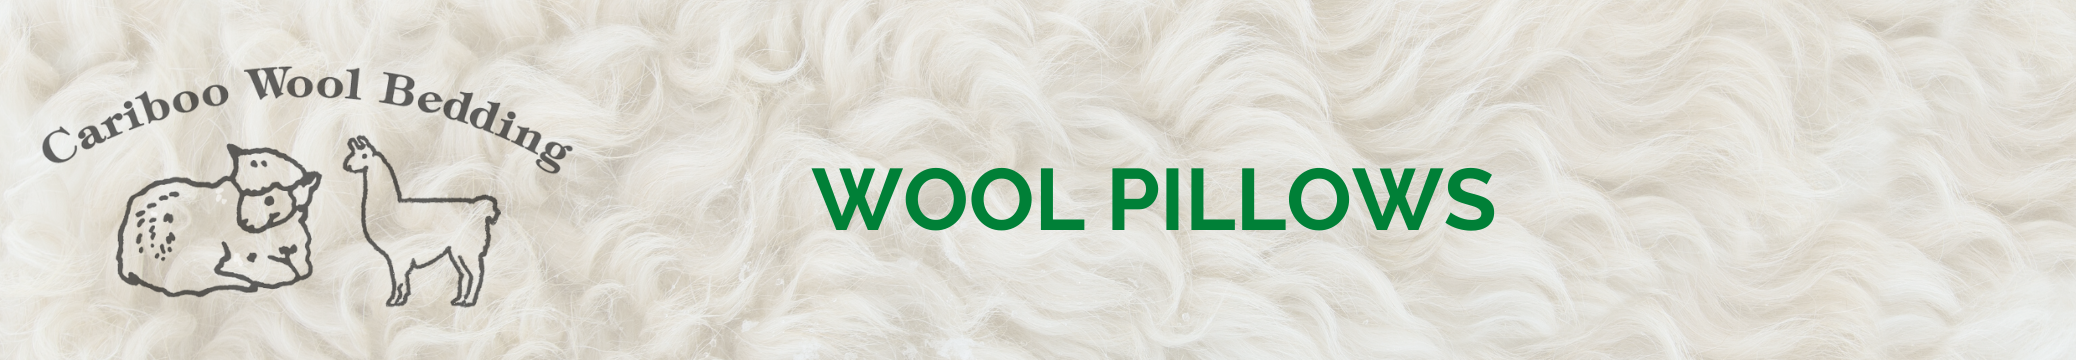 Wool Pillows Store